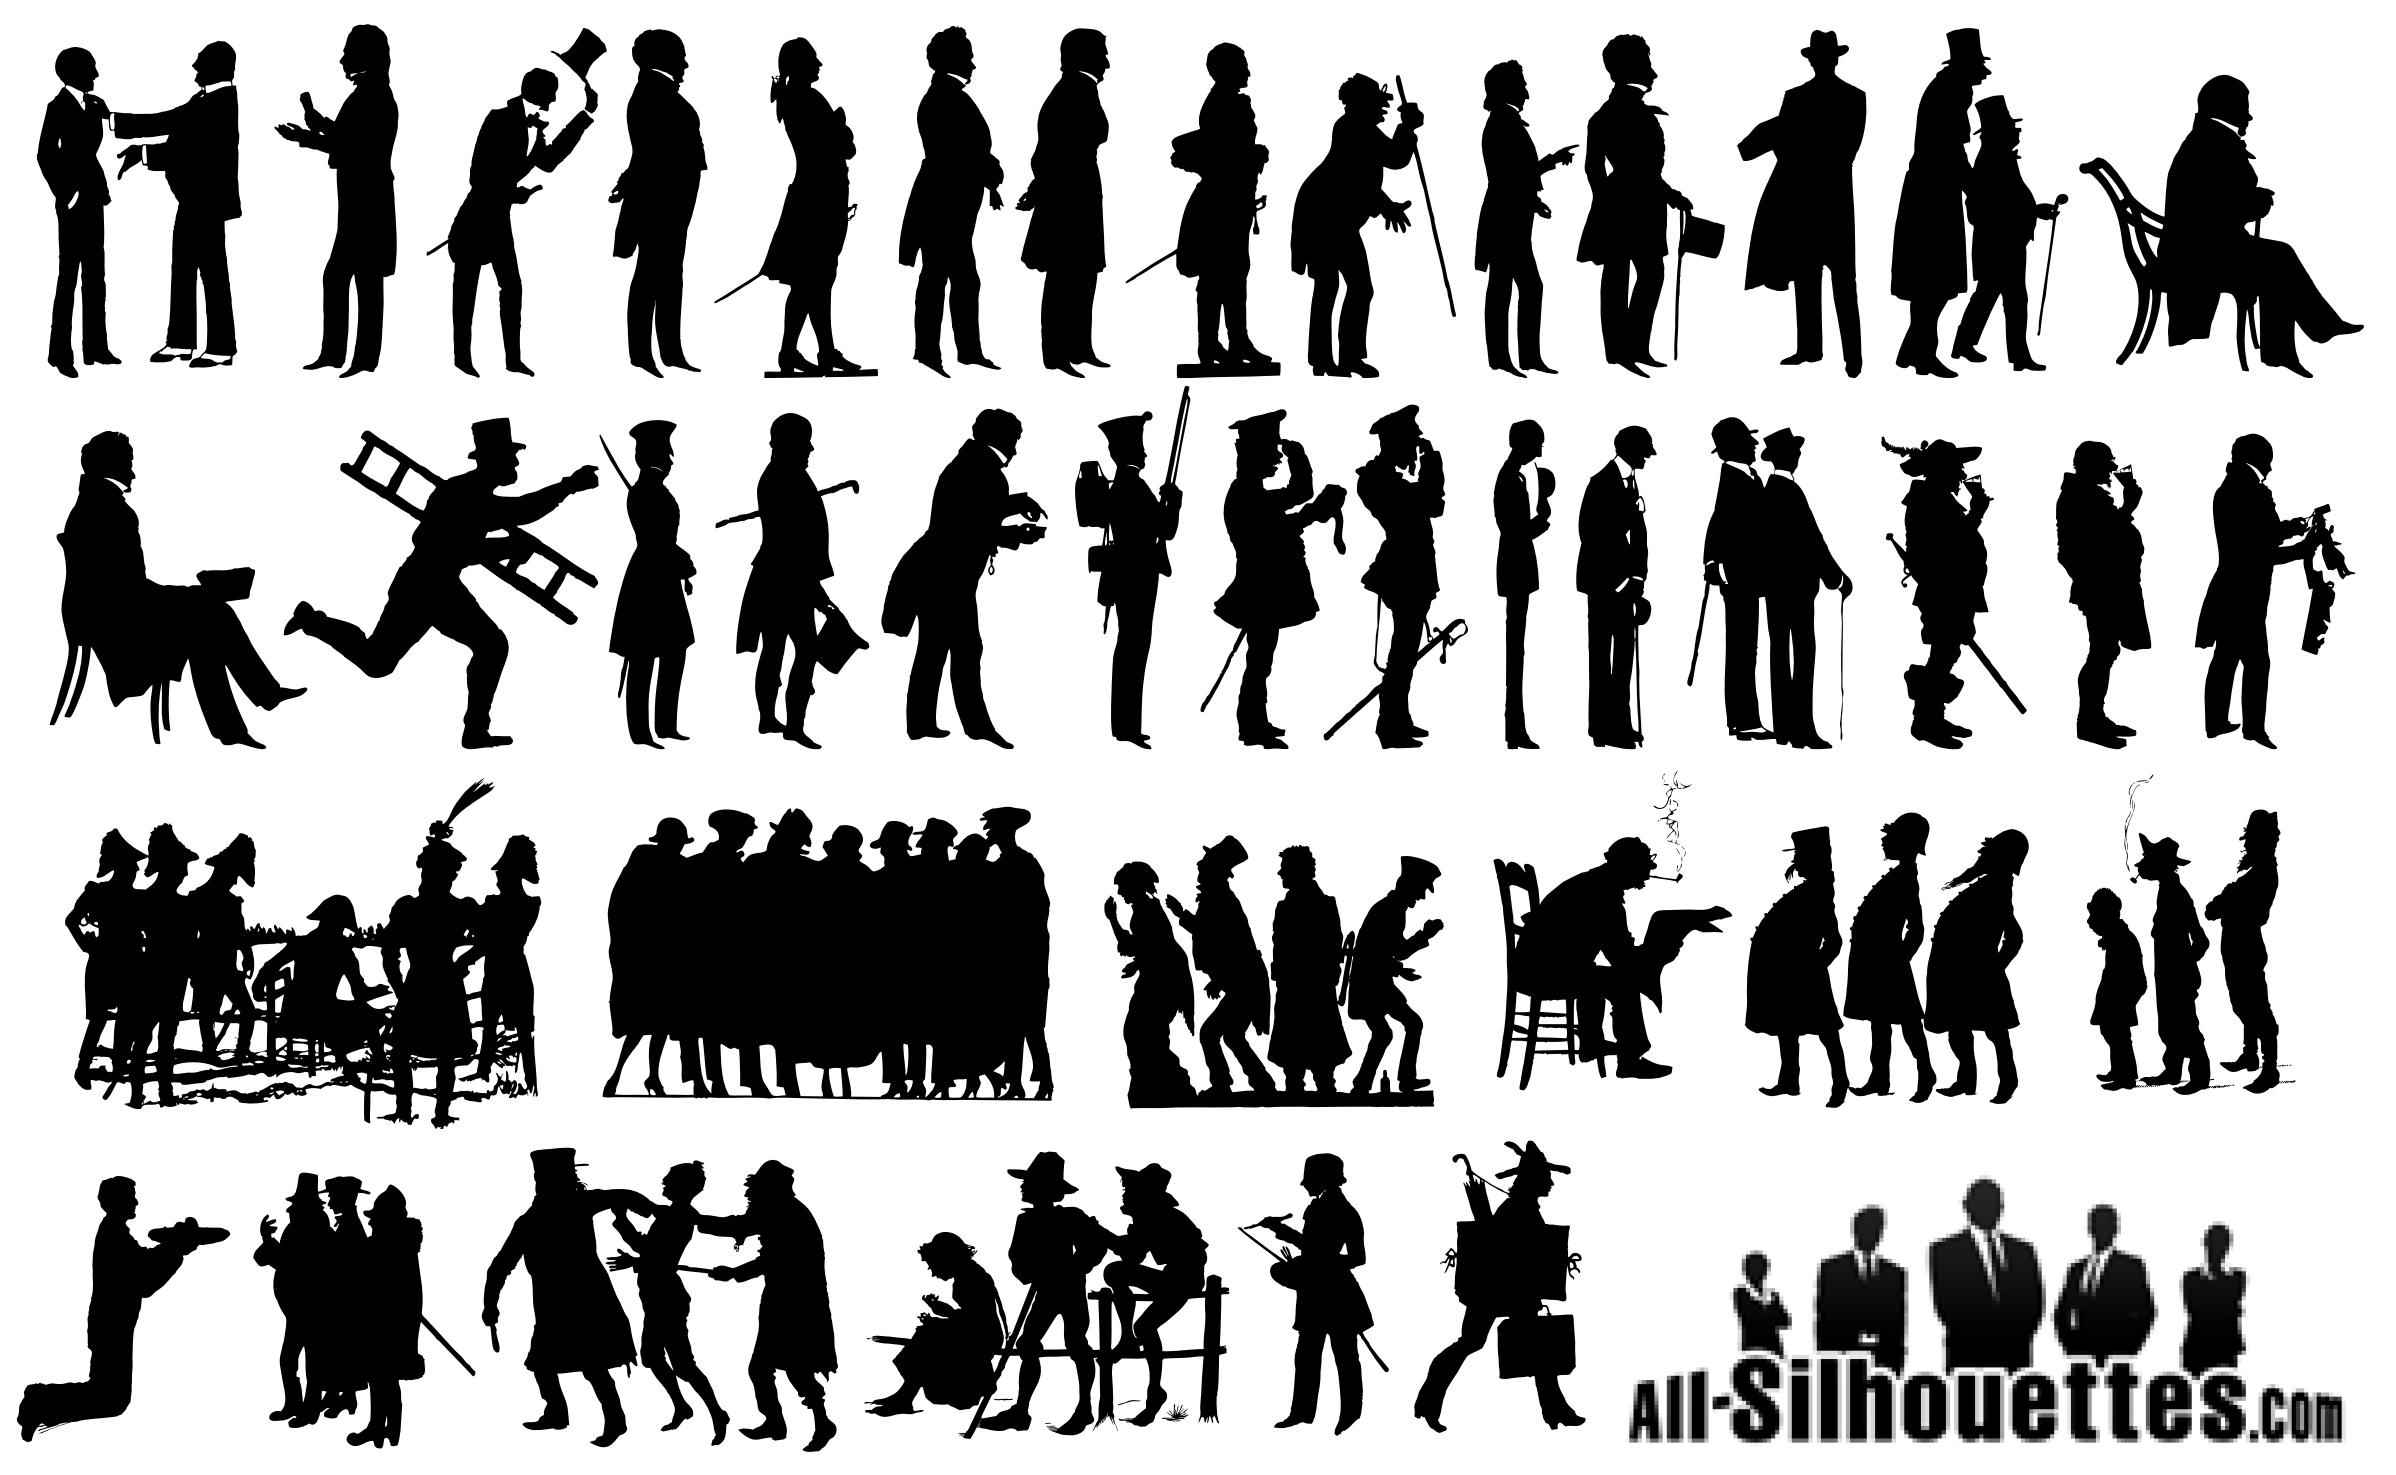 18th century man silhouettes